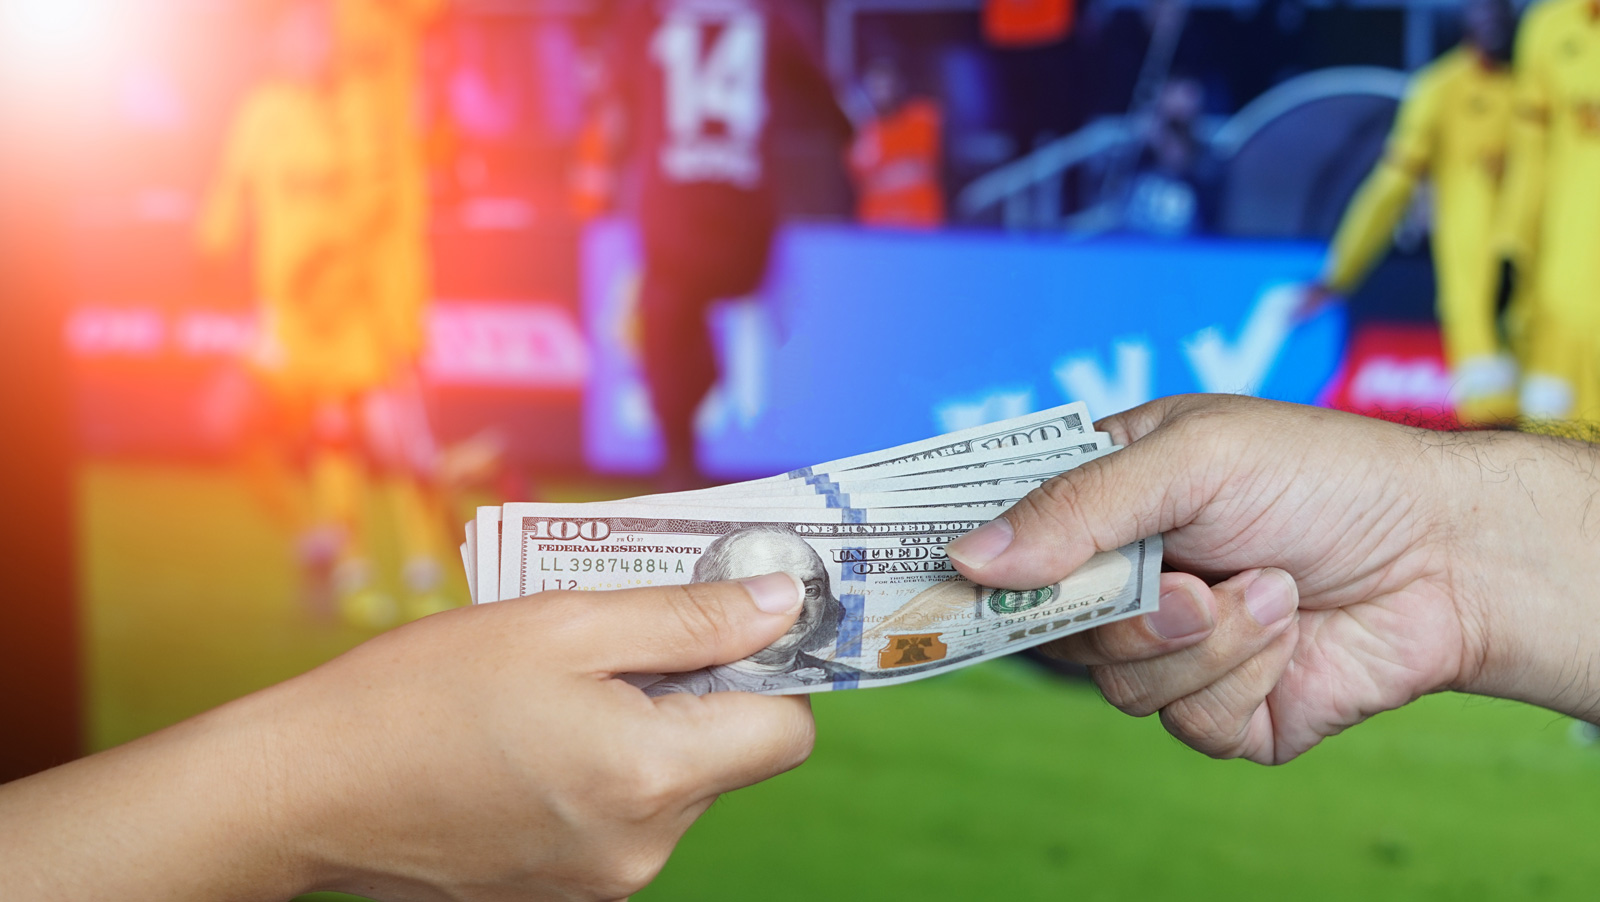 Taiwan sports betting sees spike thanks to World Cup wagers